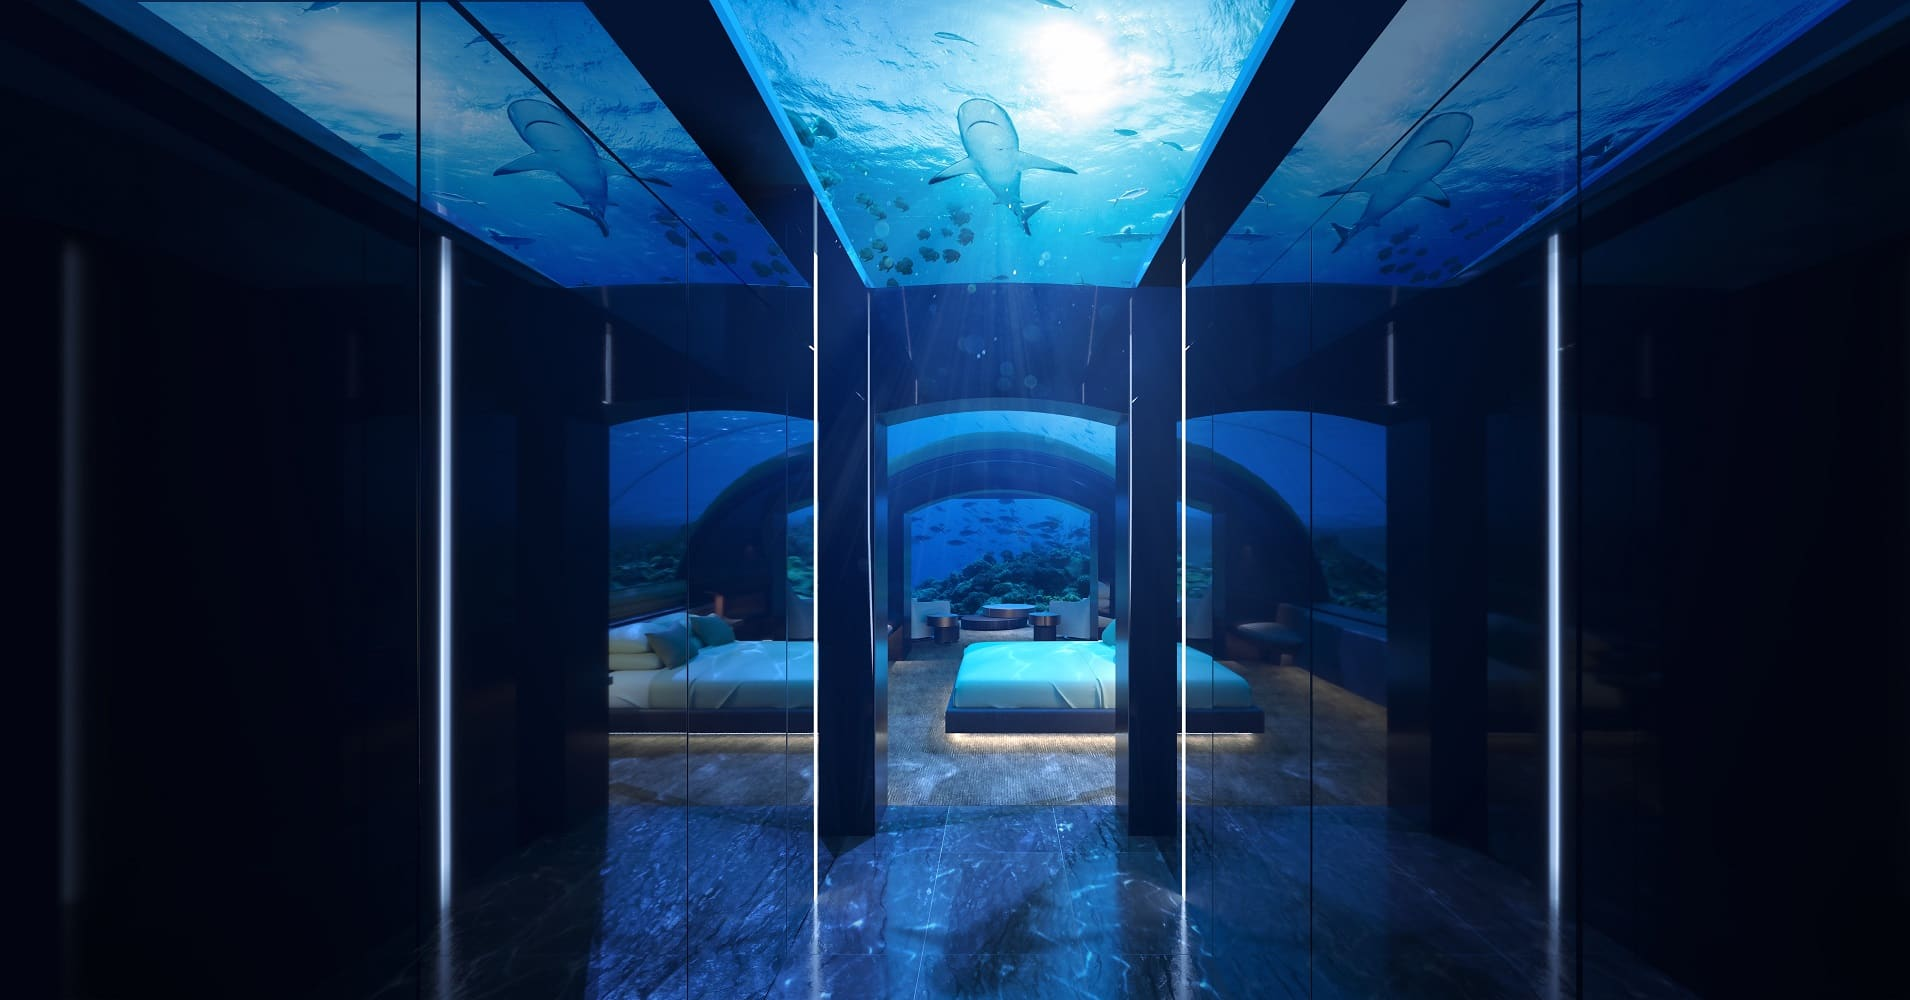 The undersea residence at Muraka